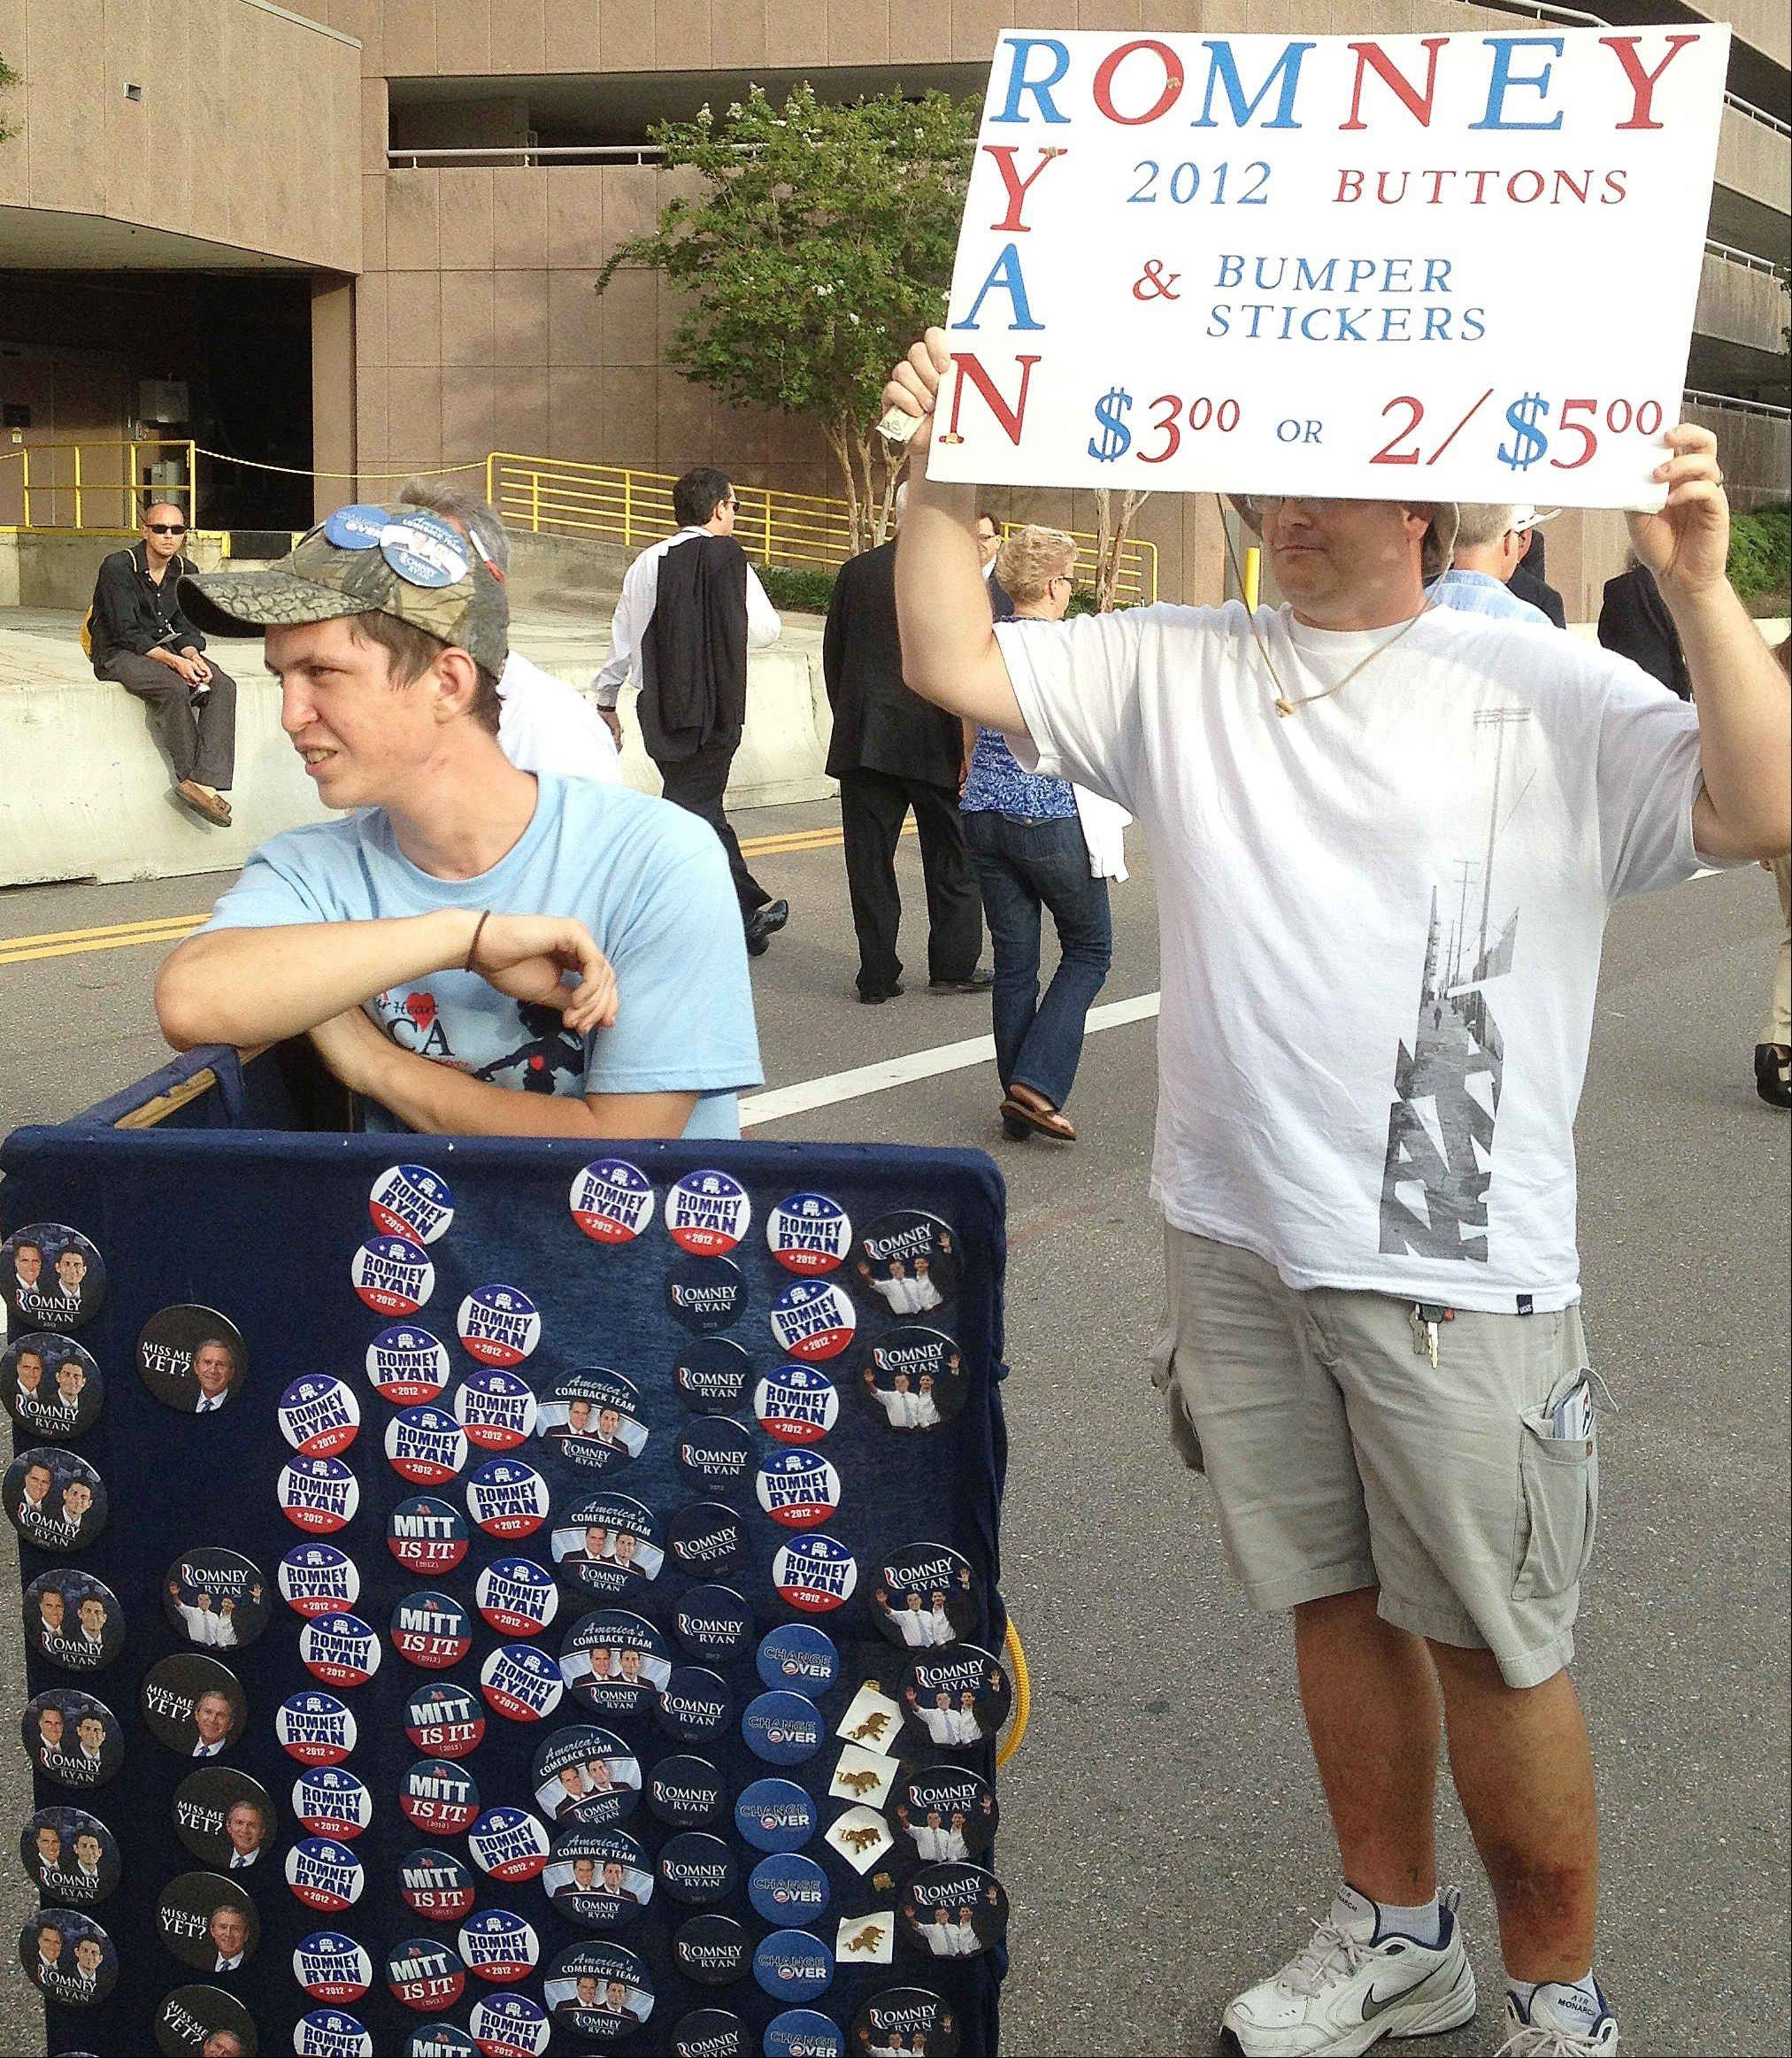 Michael Kirever, left, and Brian Judge, sell buttons of Republican presidential nominee Mitt Romney Wednesday outside the Republican National Convention in Tampa, Fla. While buttons are seen at the convention, they are far from ubiquitous, and the days when delegates were littered with partisan messages from seemingly head to toe appear to be long past.